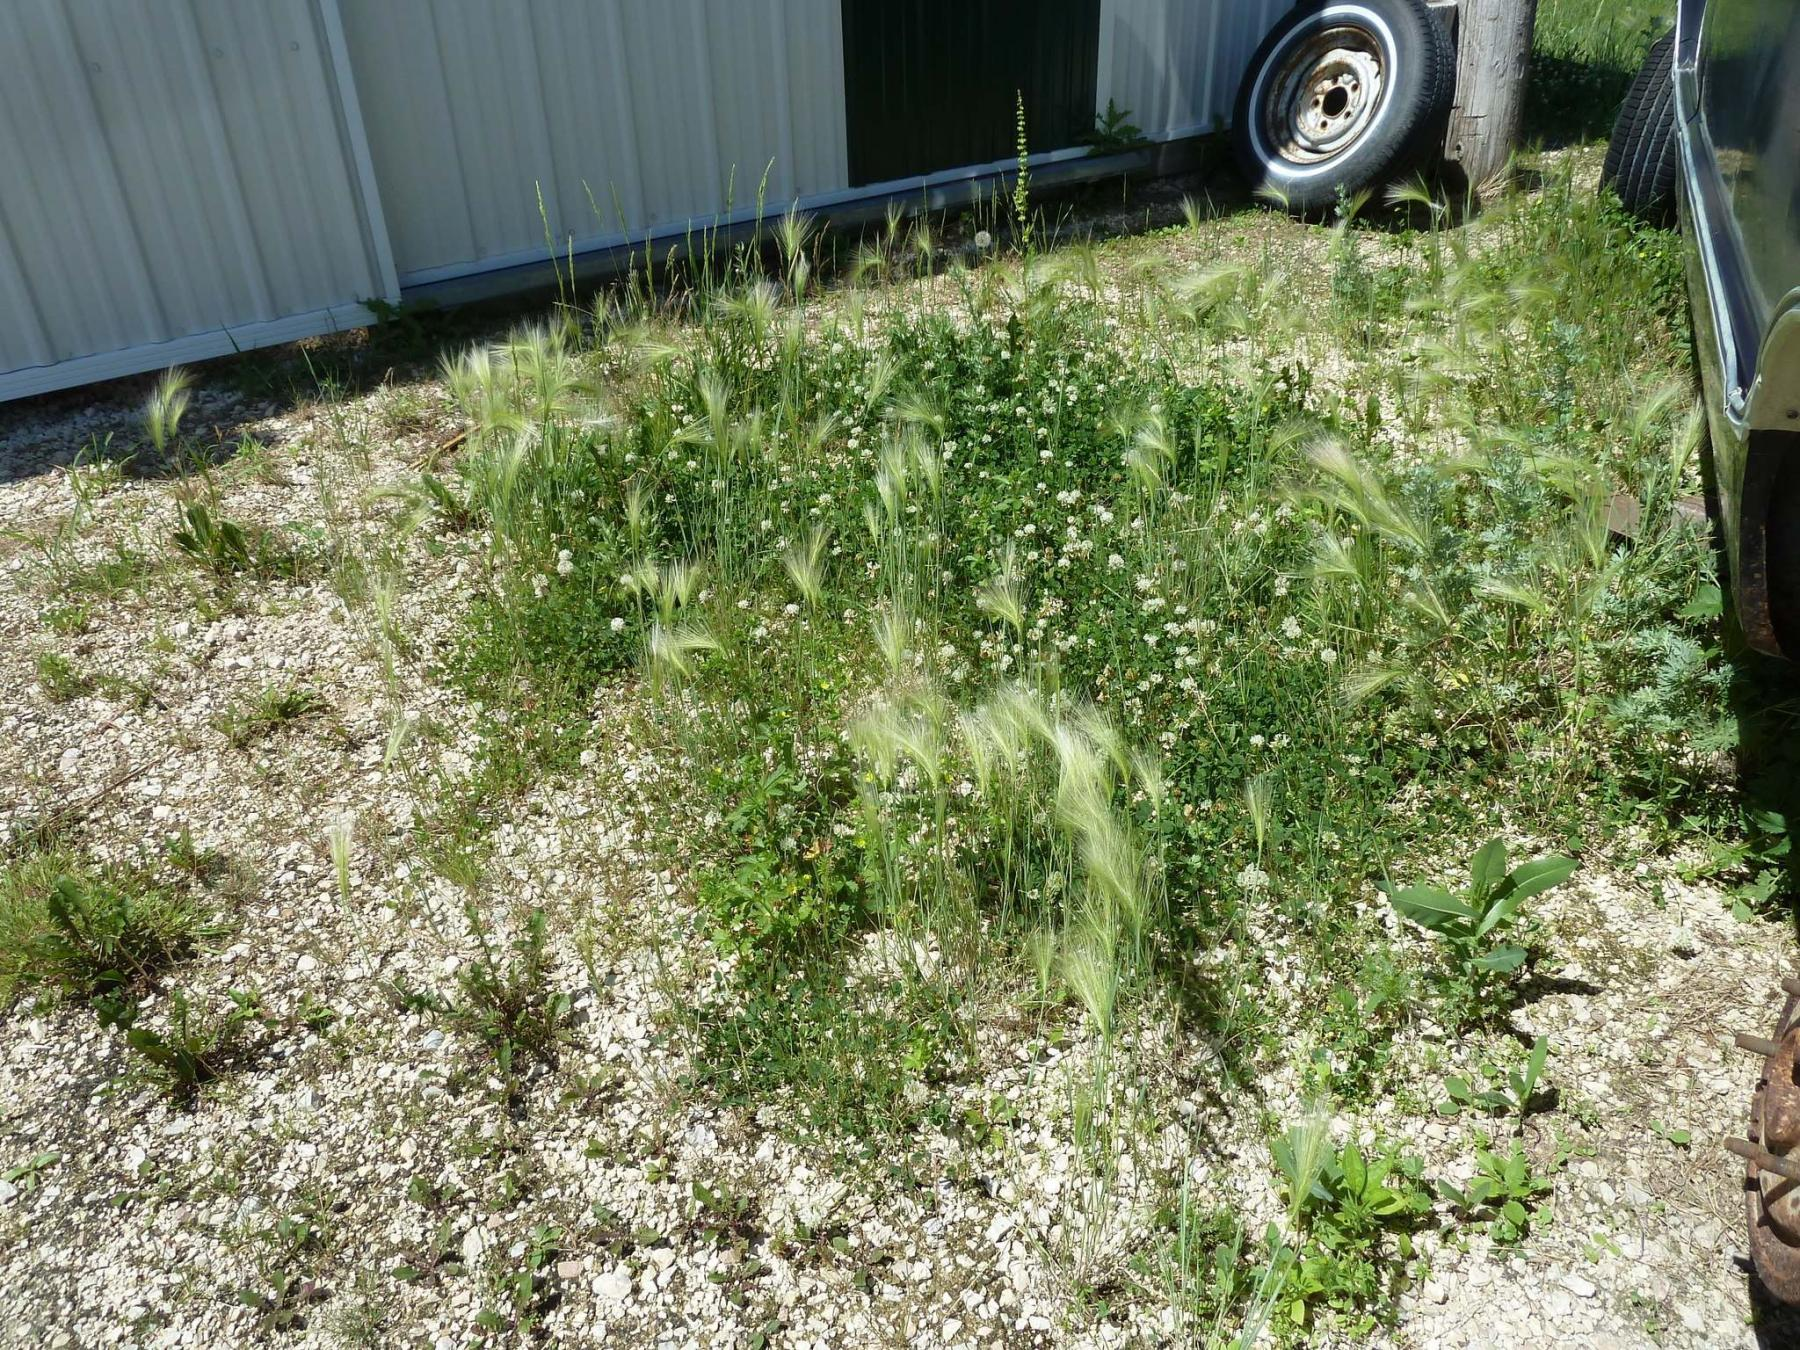 <p>Laurie Mustard / Winnipeg Free Press</p><p>Laurie Mustard is planning to try several home remedies to kill the weeds that are taking over his driveway.</p>